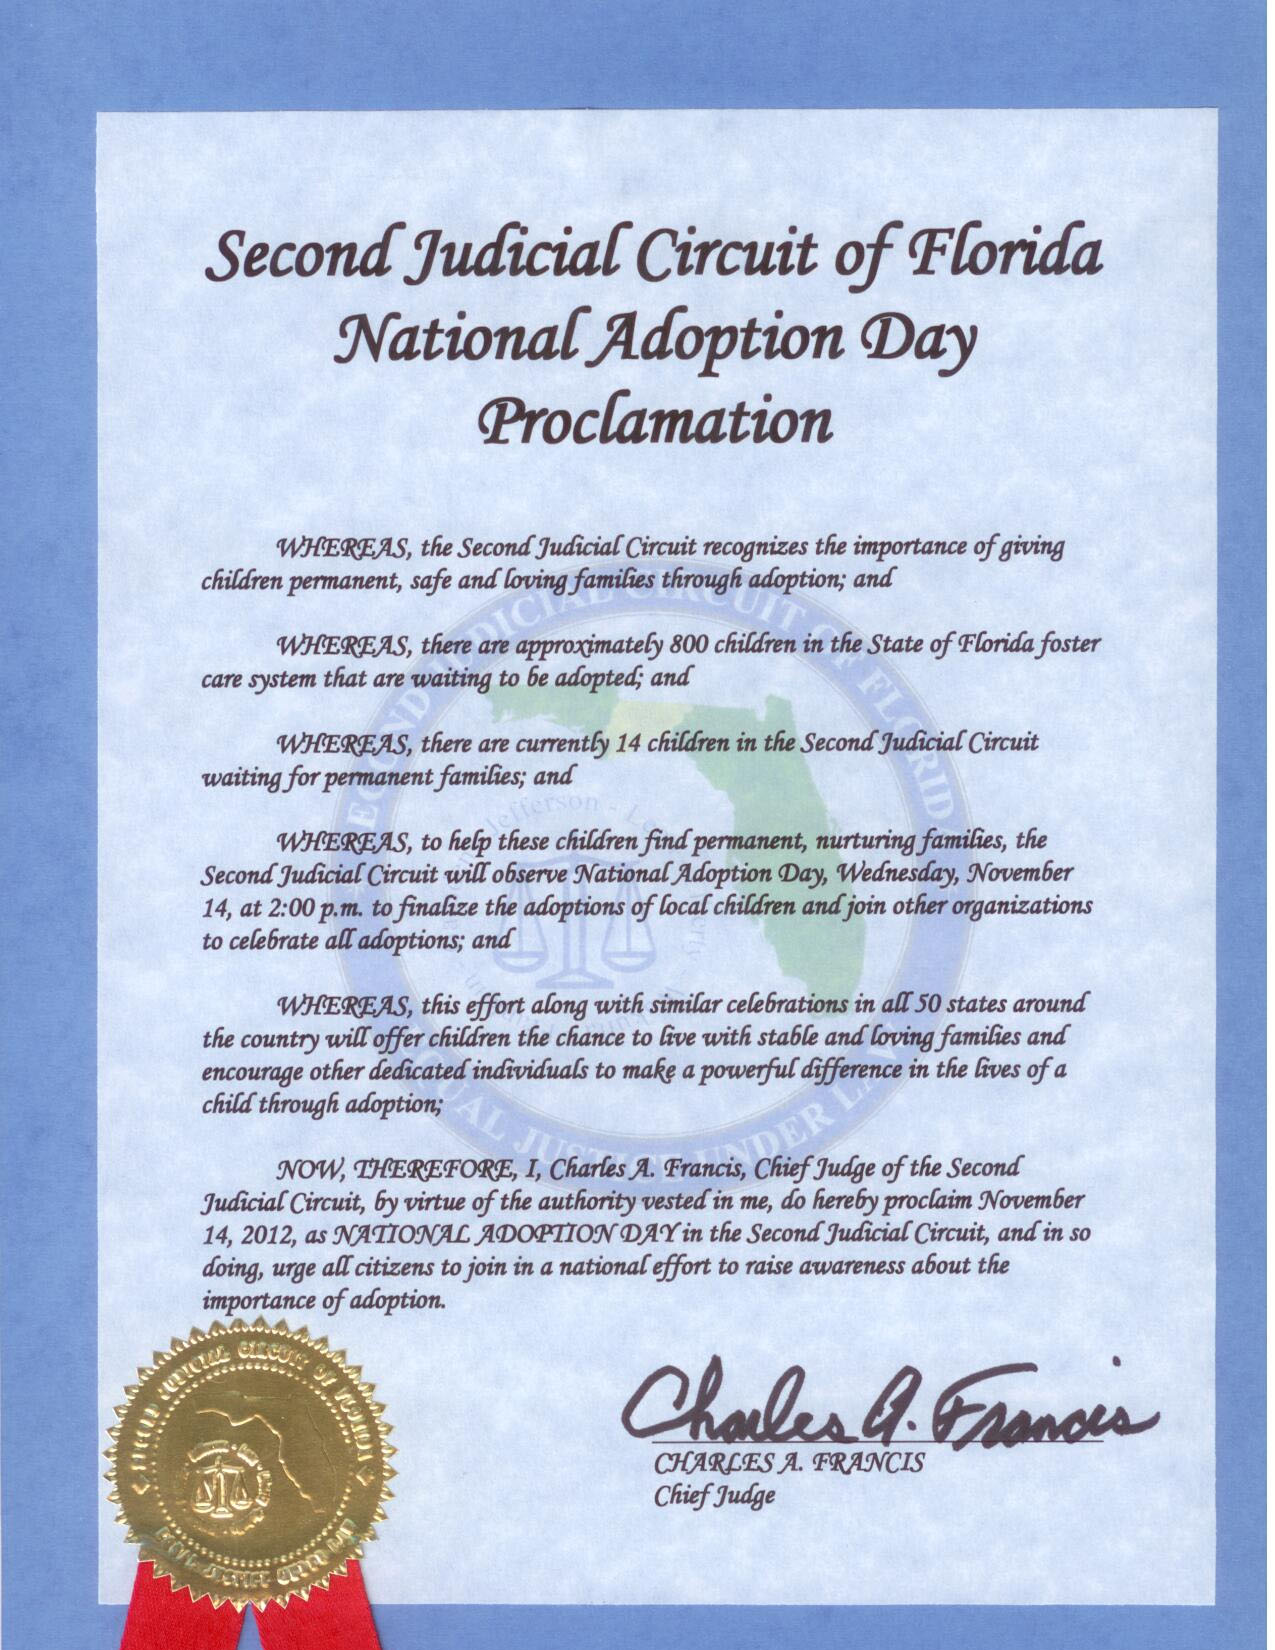 Floridas 2nd Judicial Circuit Adoption Photo Of Day Proclamation